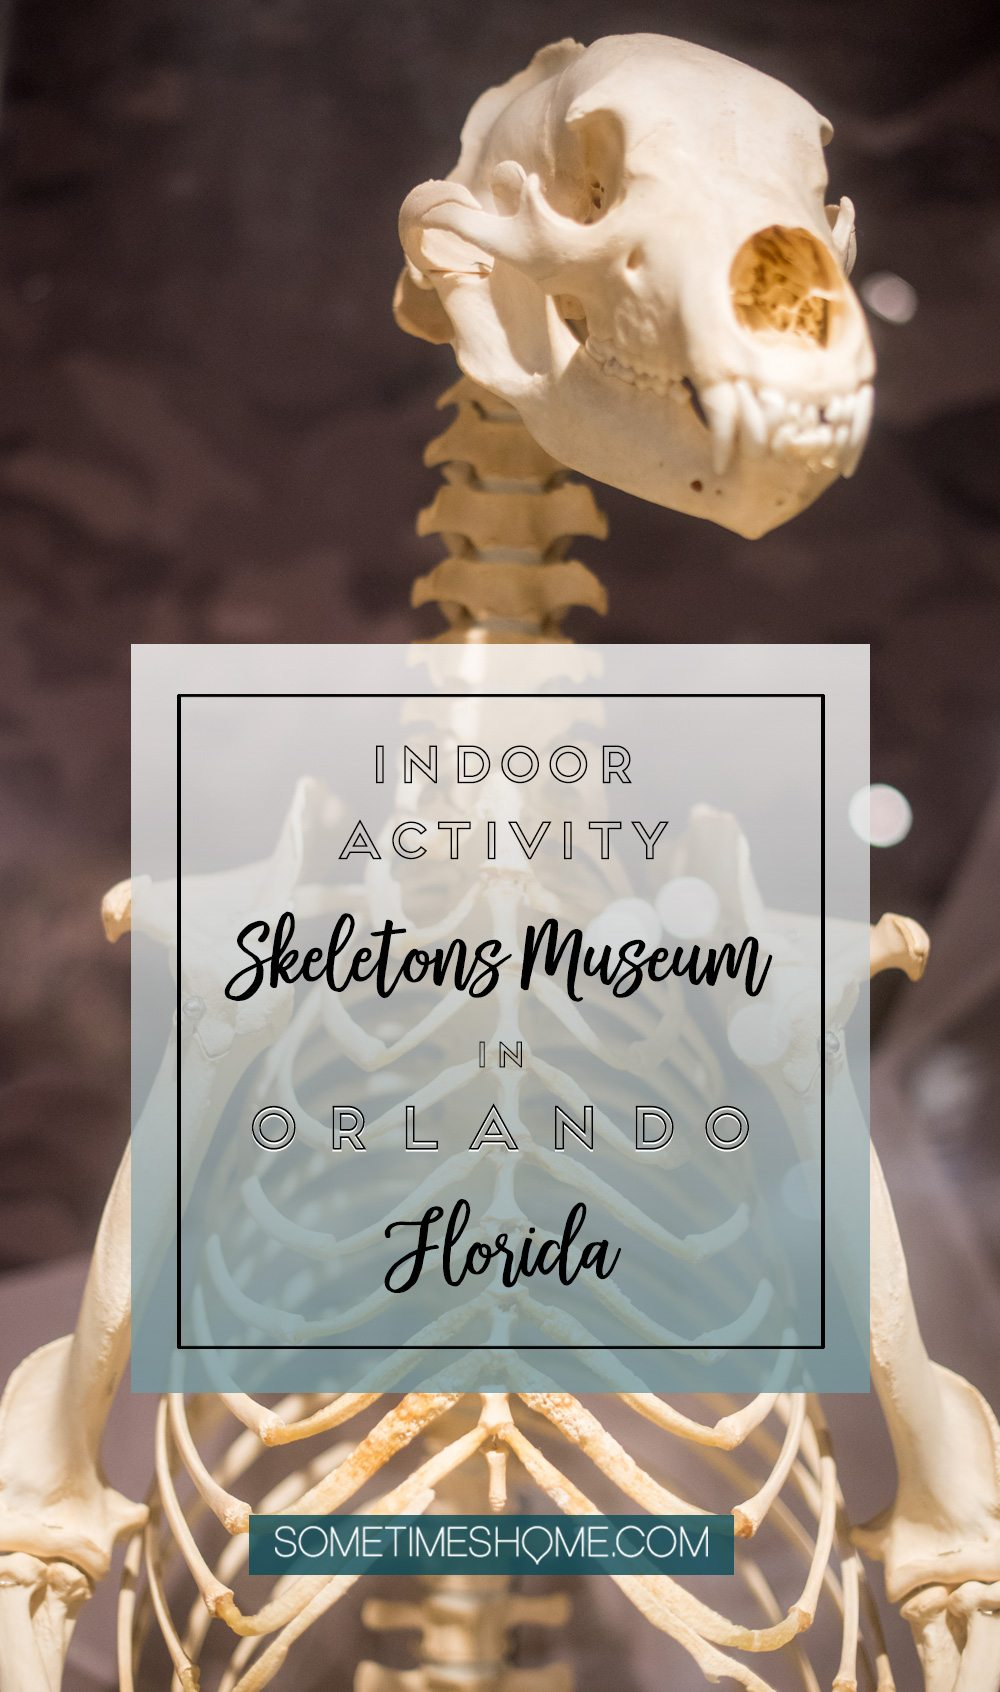 Orlando indoor activities for adults: Skeletons Museum of Osteology. It's a great thing to do for adults or kids, indoors on International Drive at the new attraction area in Florida: I-Drive 360 near the Orlando Eye Ferris Wheel. Click through for hours of operation and what to expect. #OrlandoFL #Skeletons #Bones